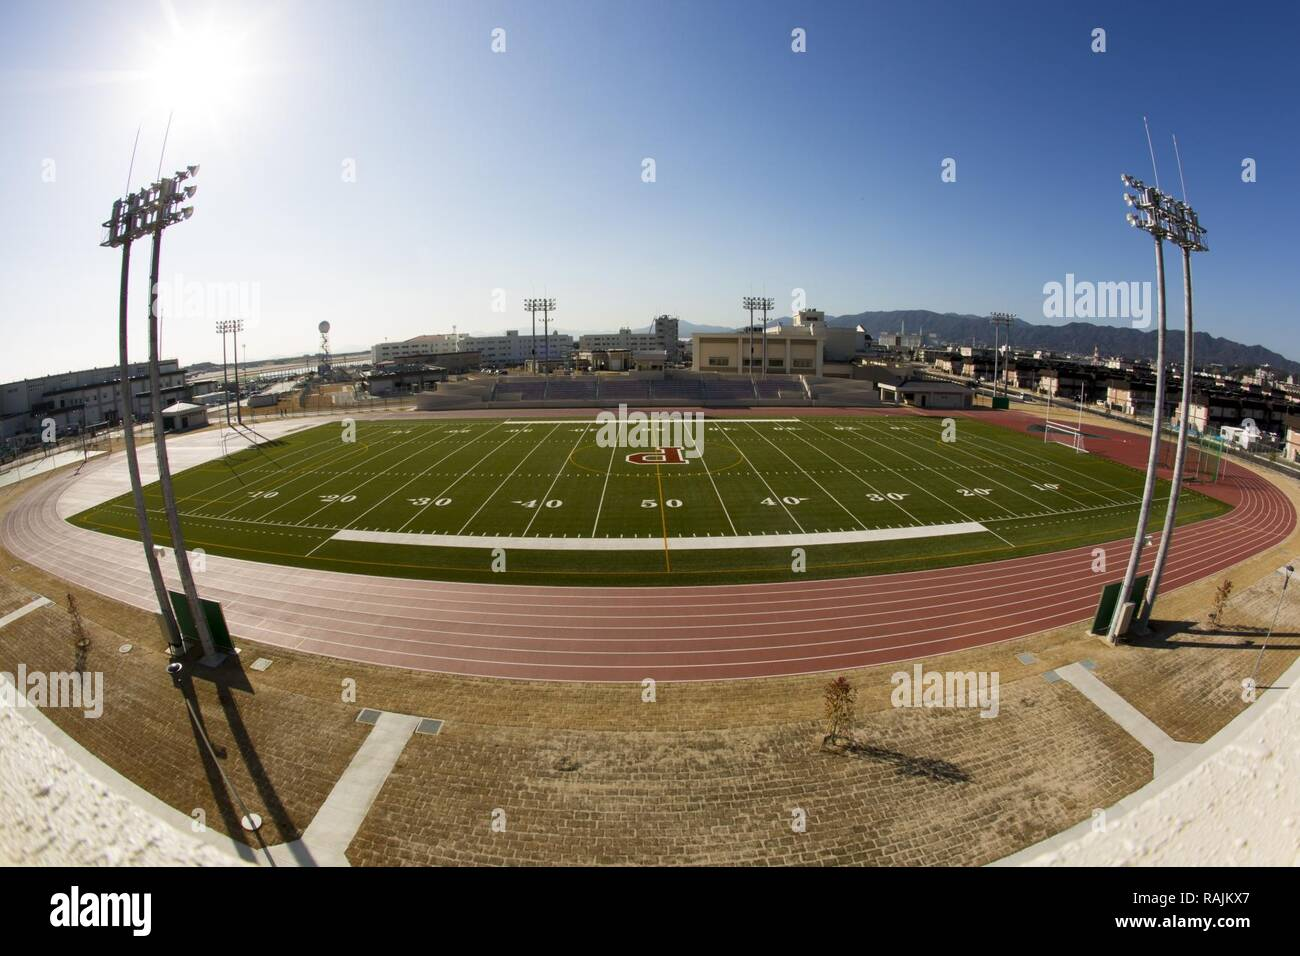 The Matthew C Perry High School Track And Field Opened Jan 20 2017 At Marine Corps